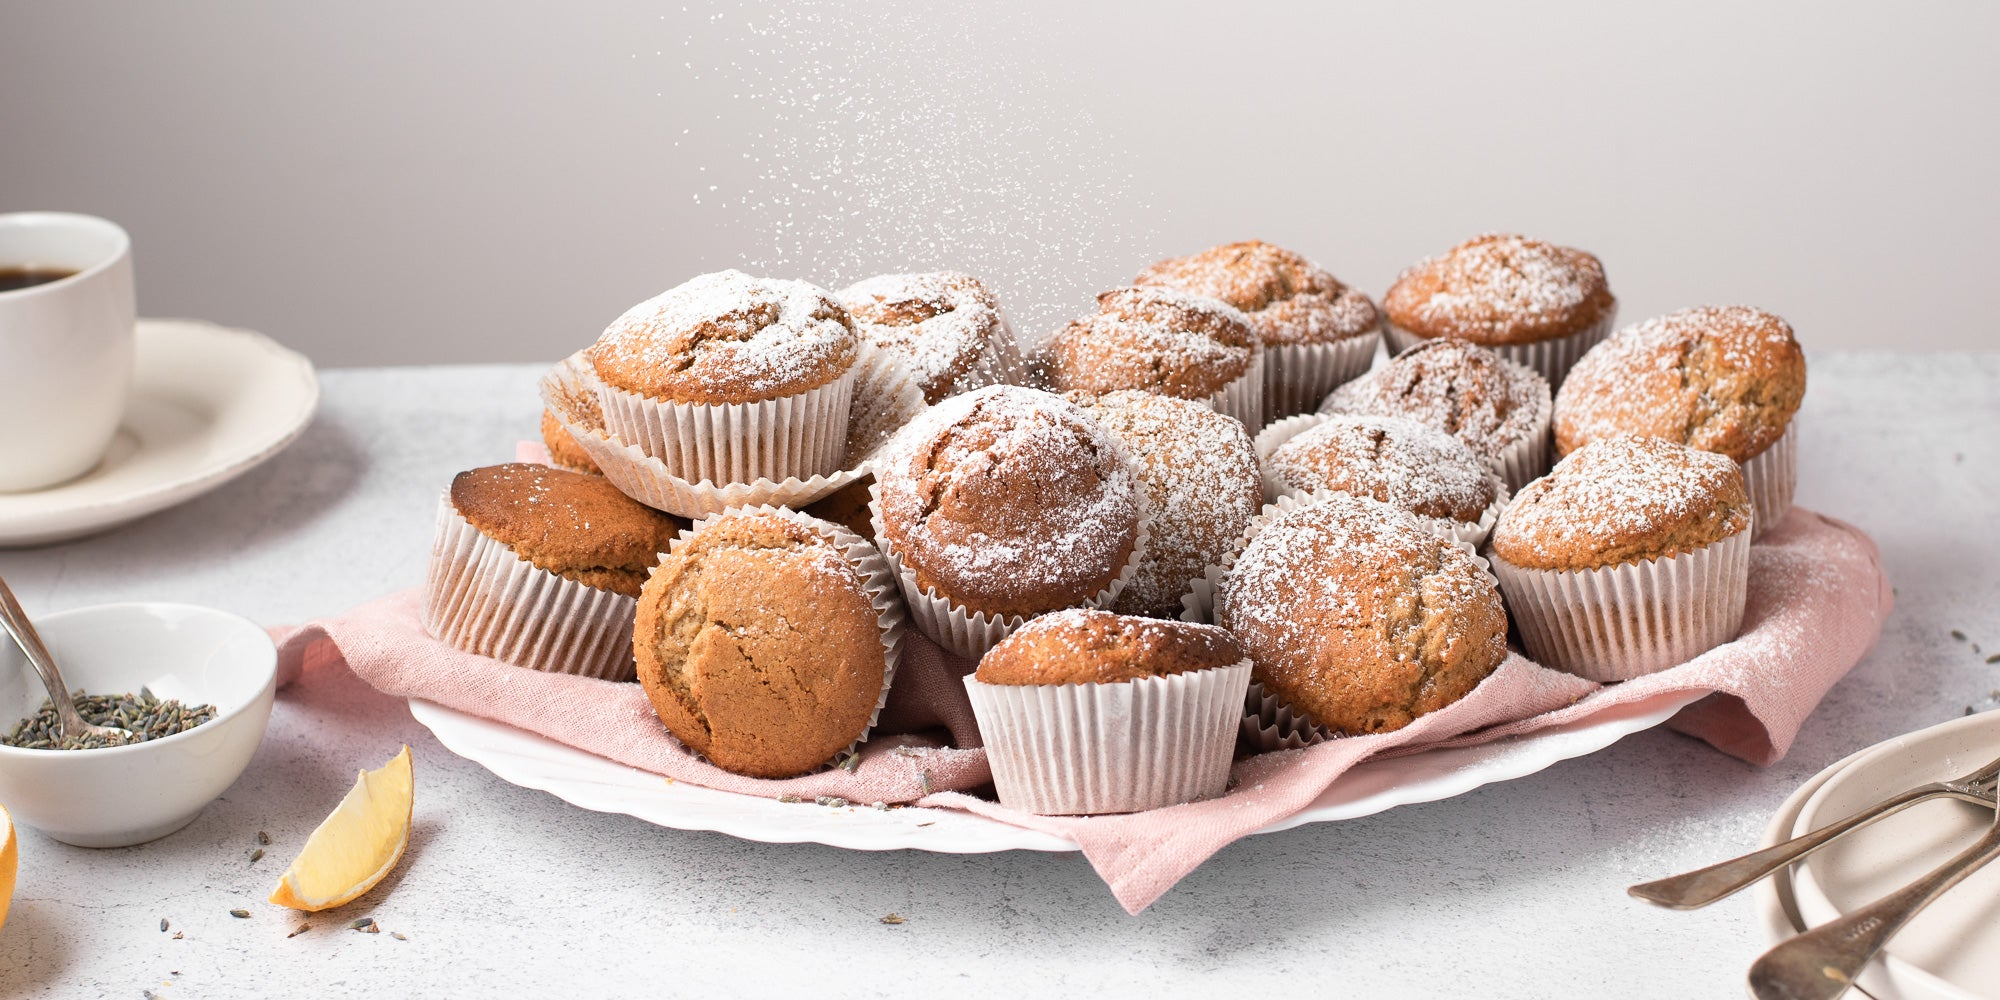 Pile of muffins coated with icing sugar